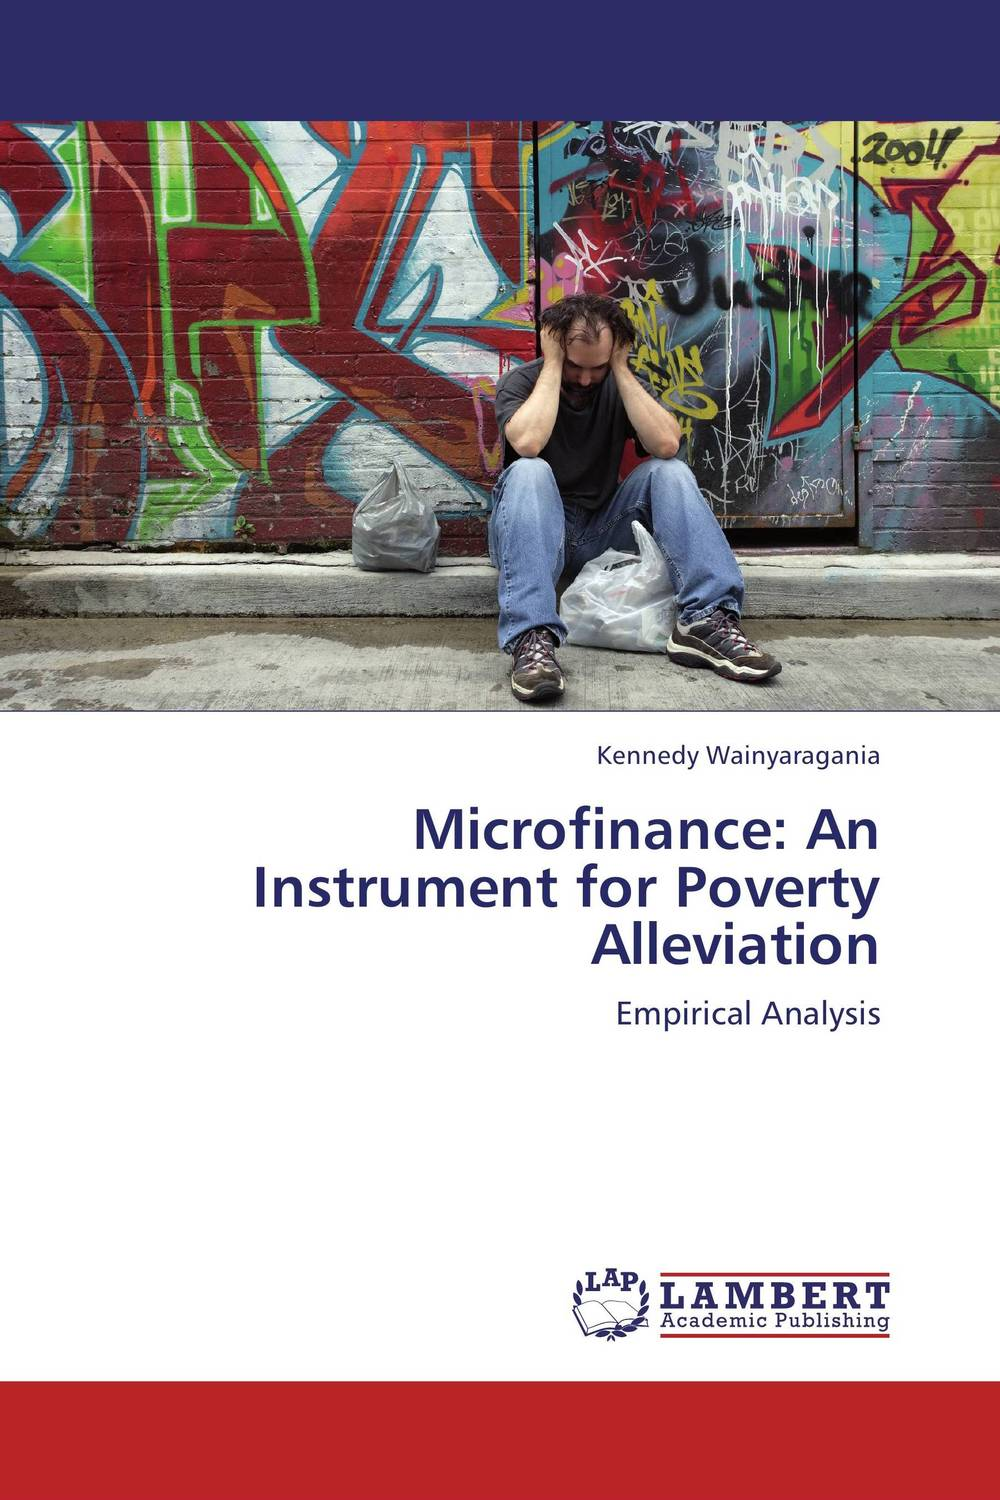 Microfinance: An Instrument for Poverty Alleviation role of ict in rural poverty alleviation